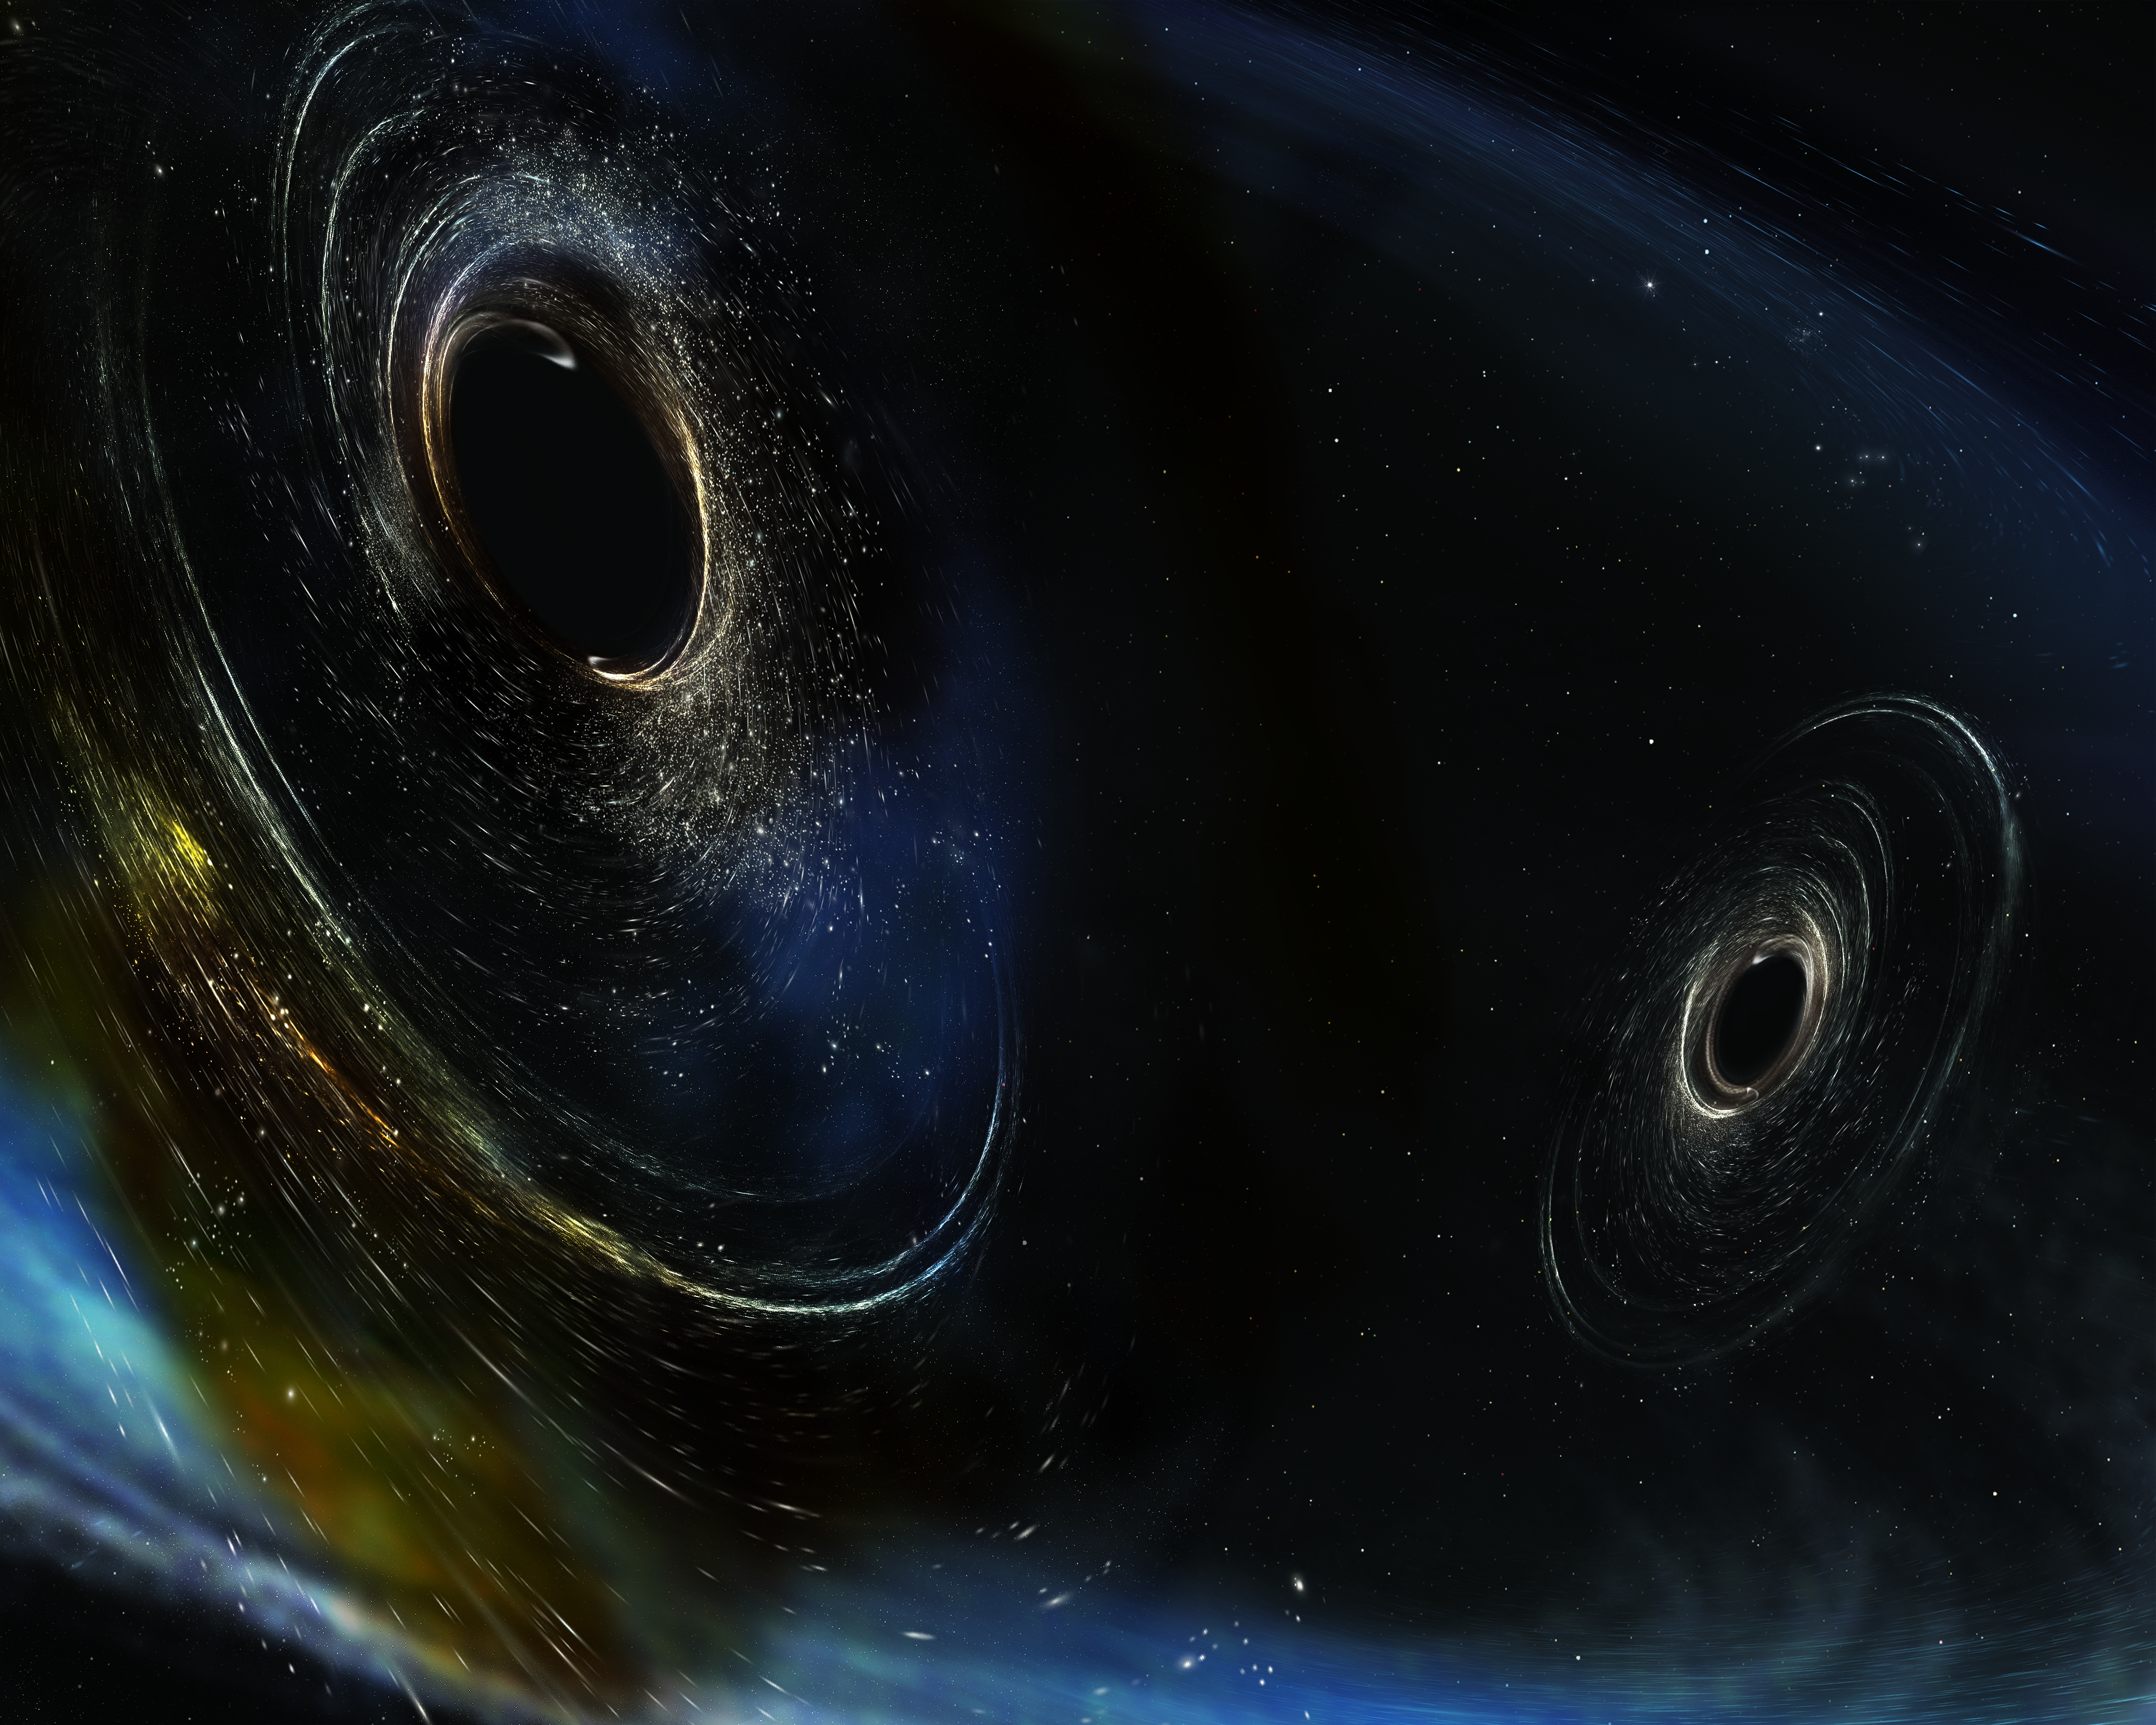 Fourth gravitational wave is detected